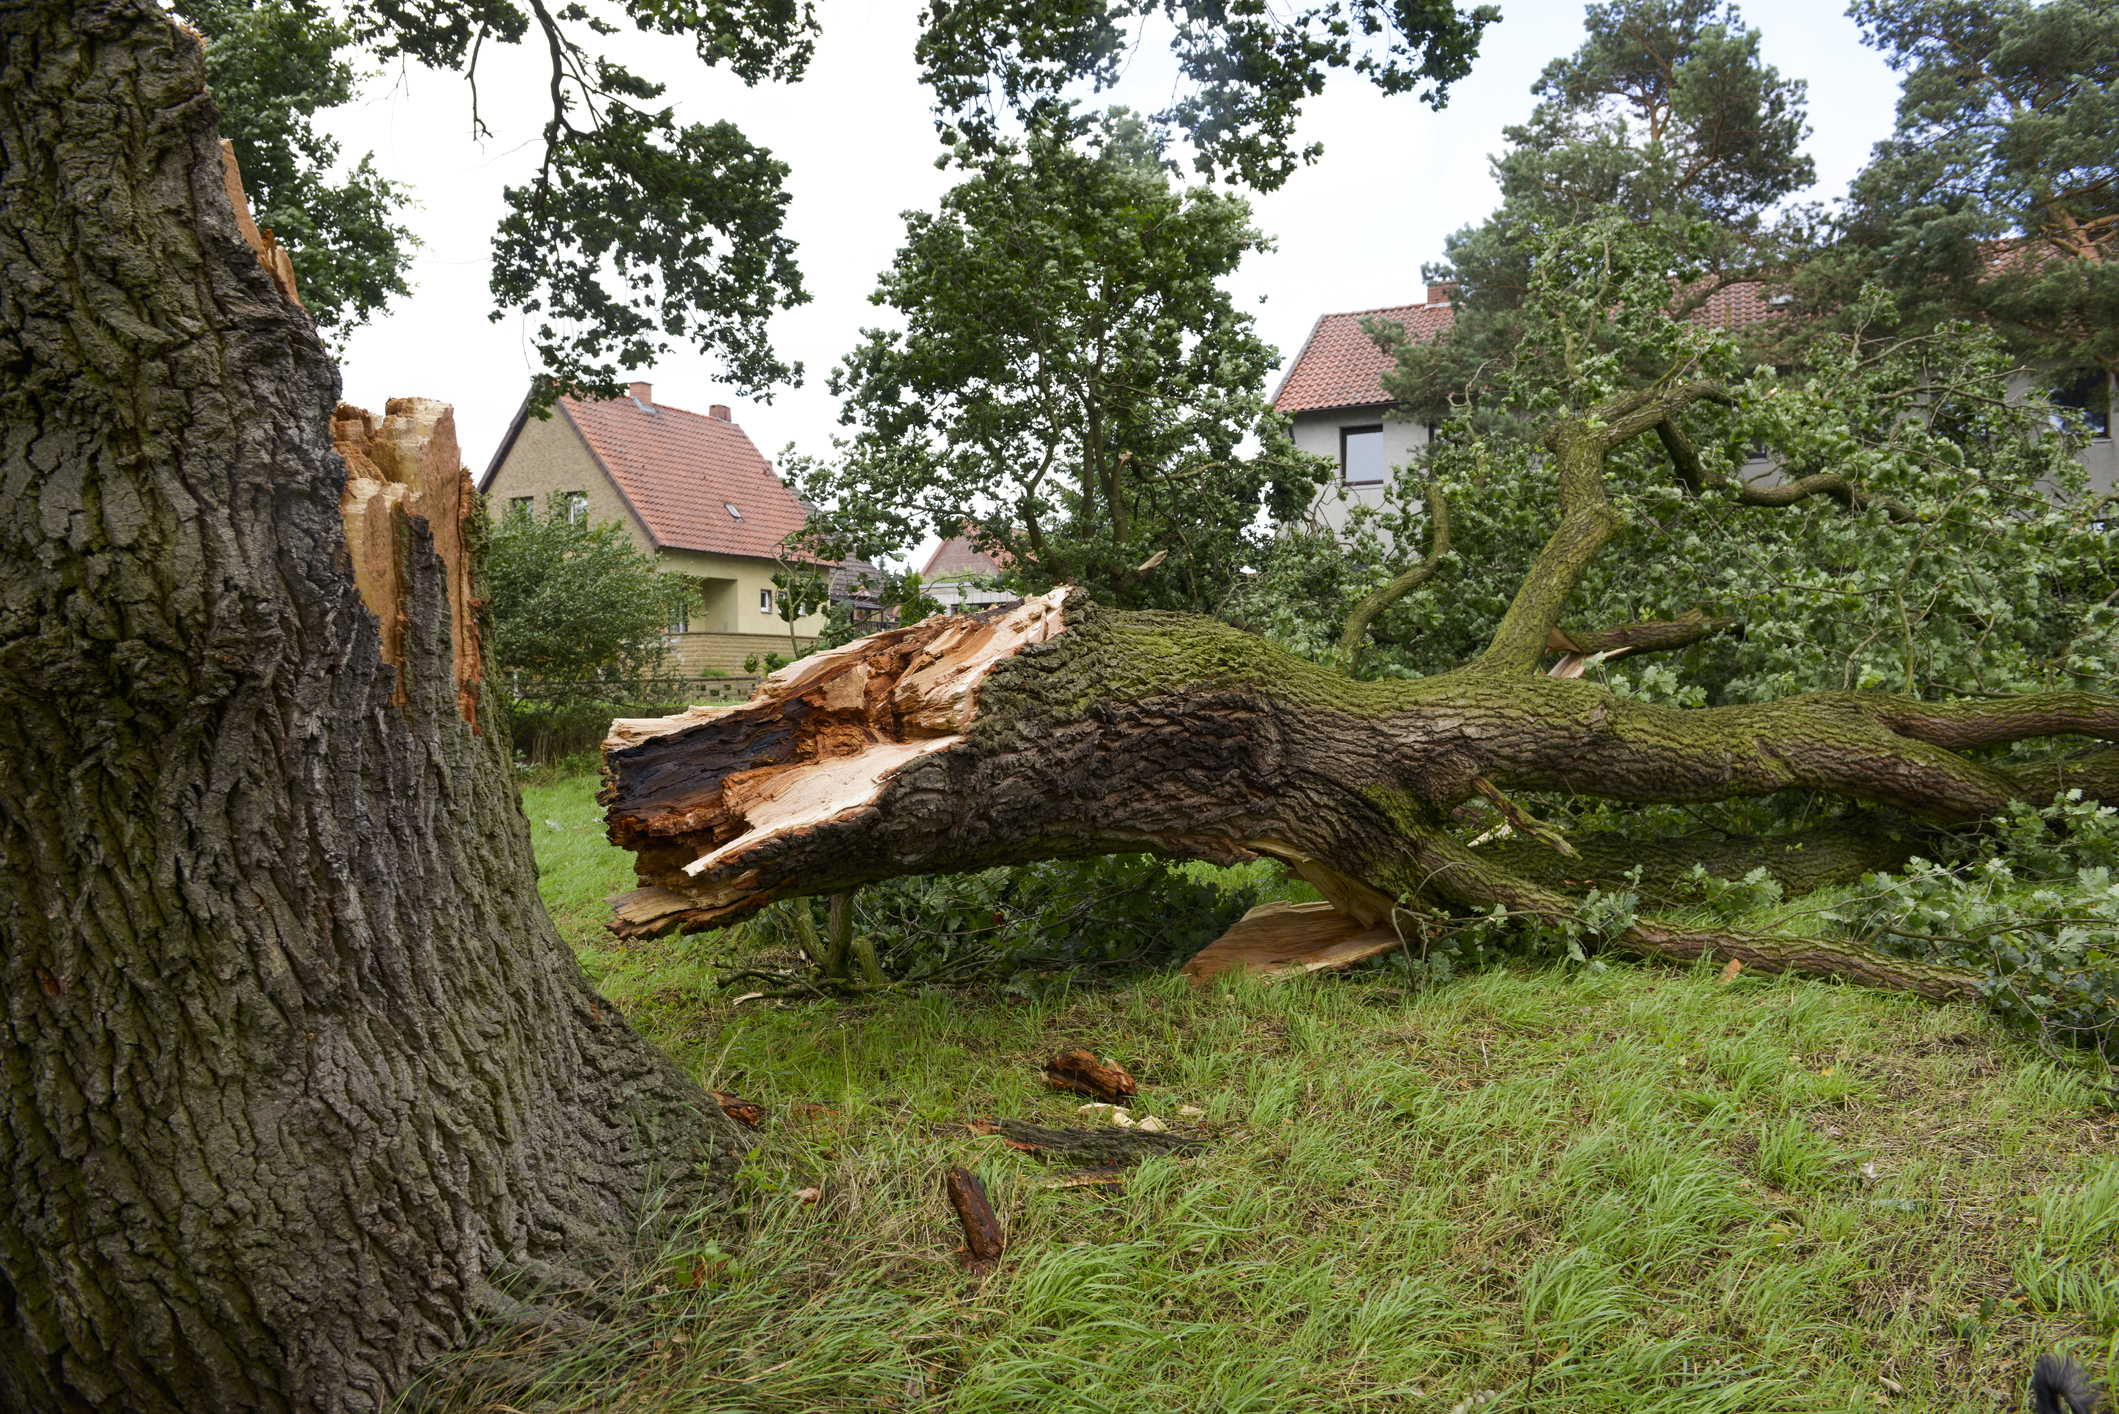 Tree Fallen over on property